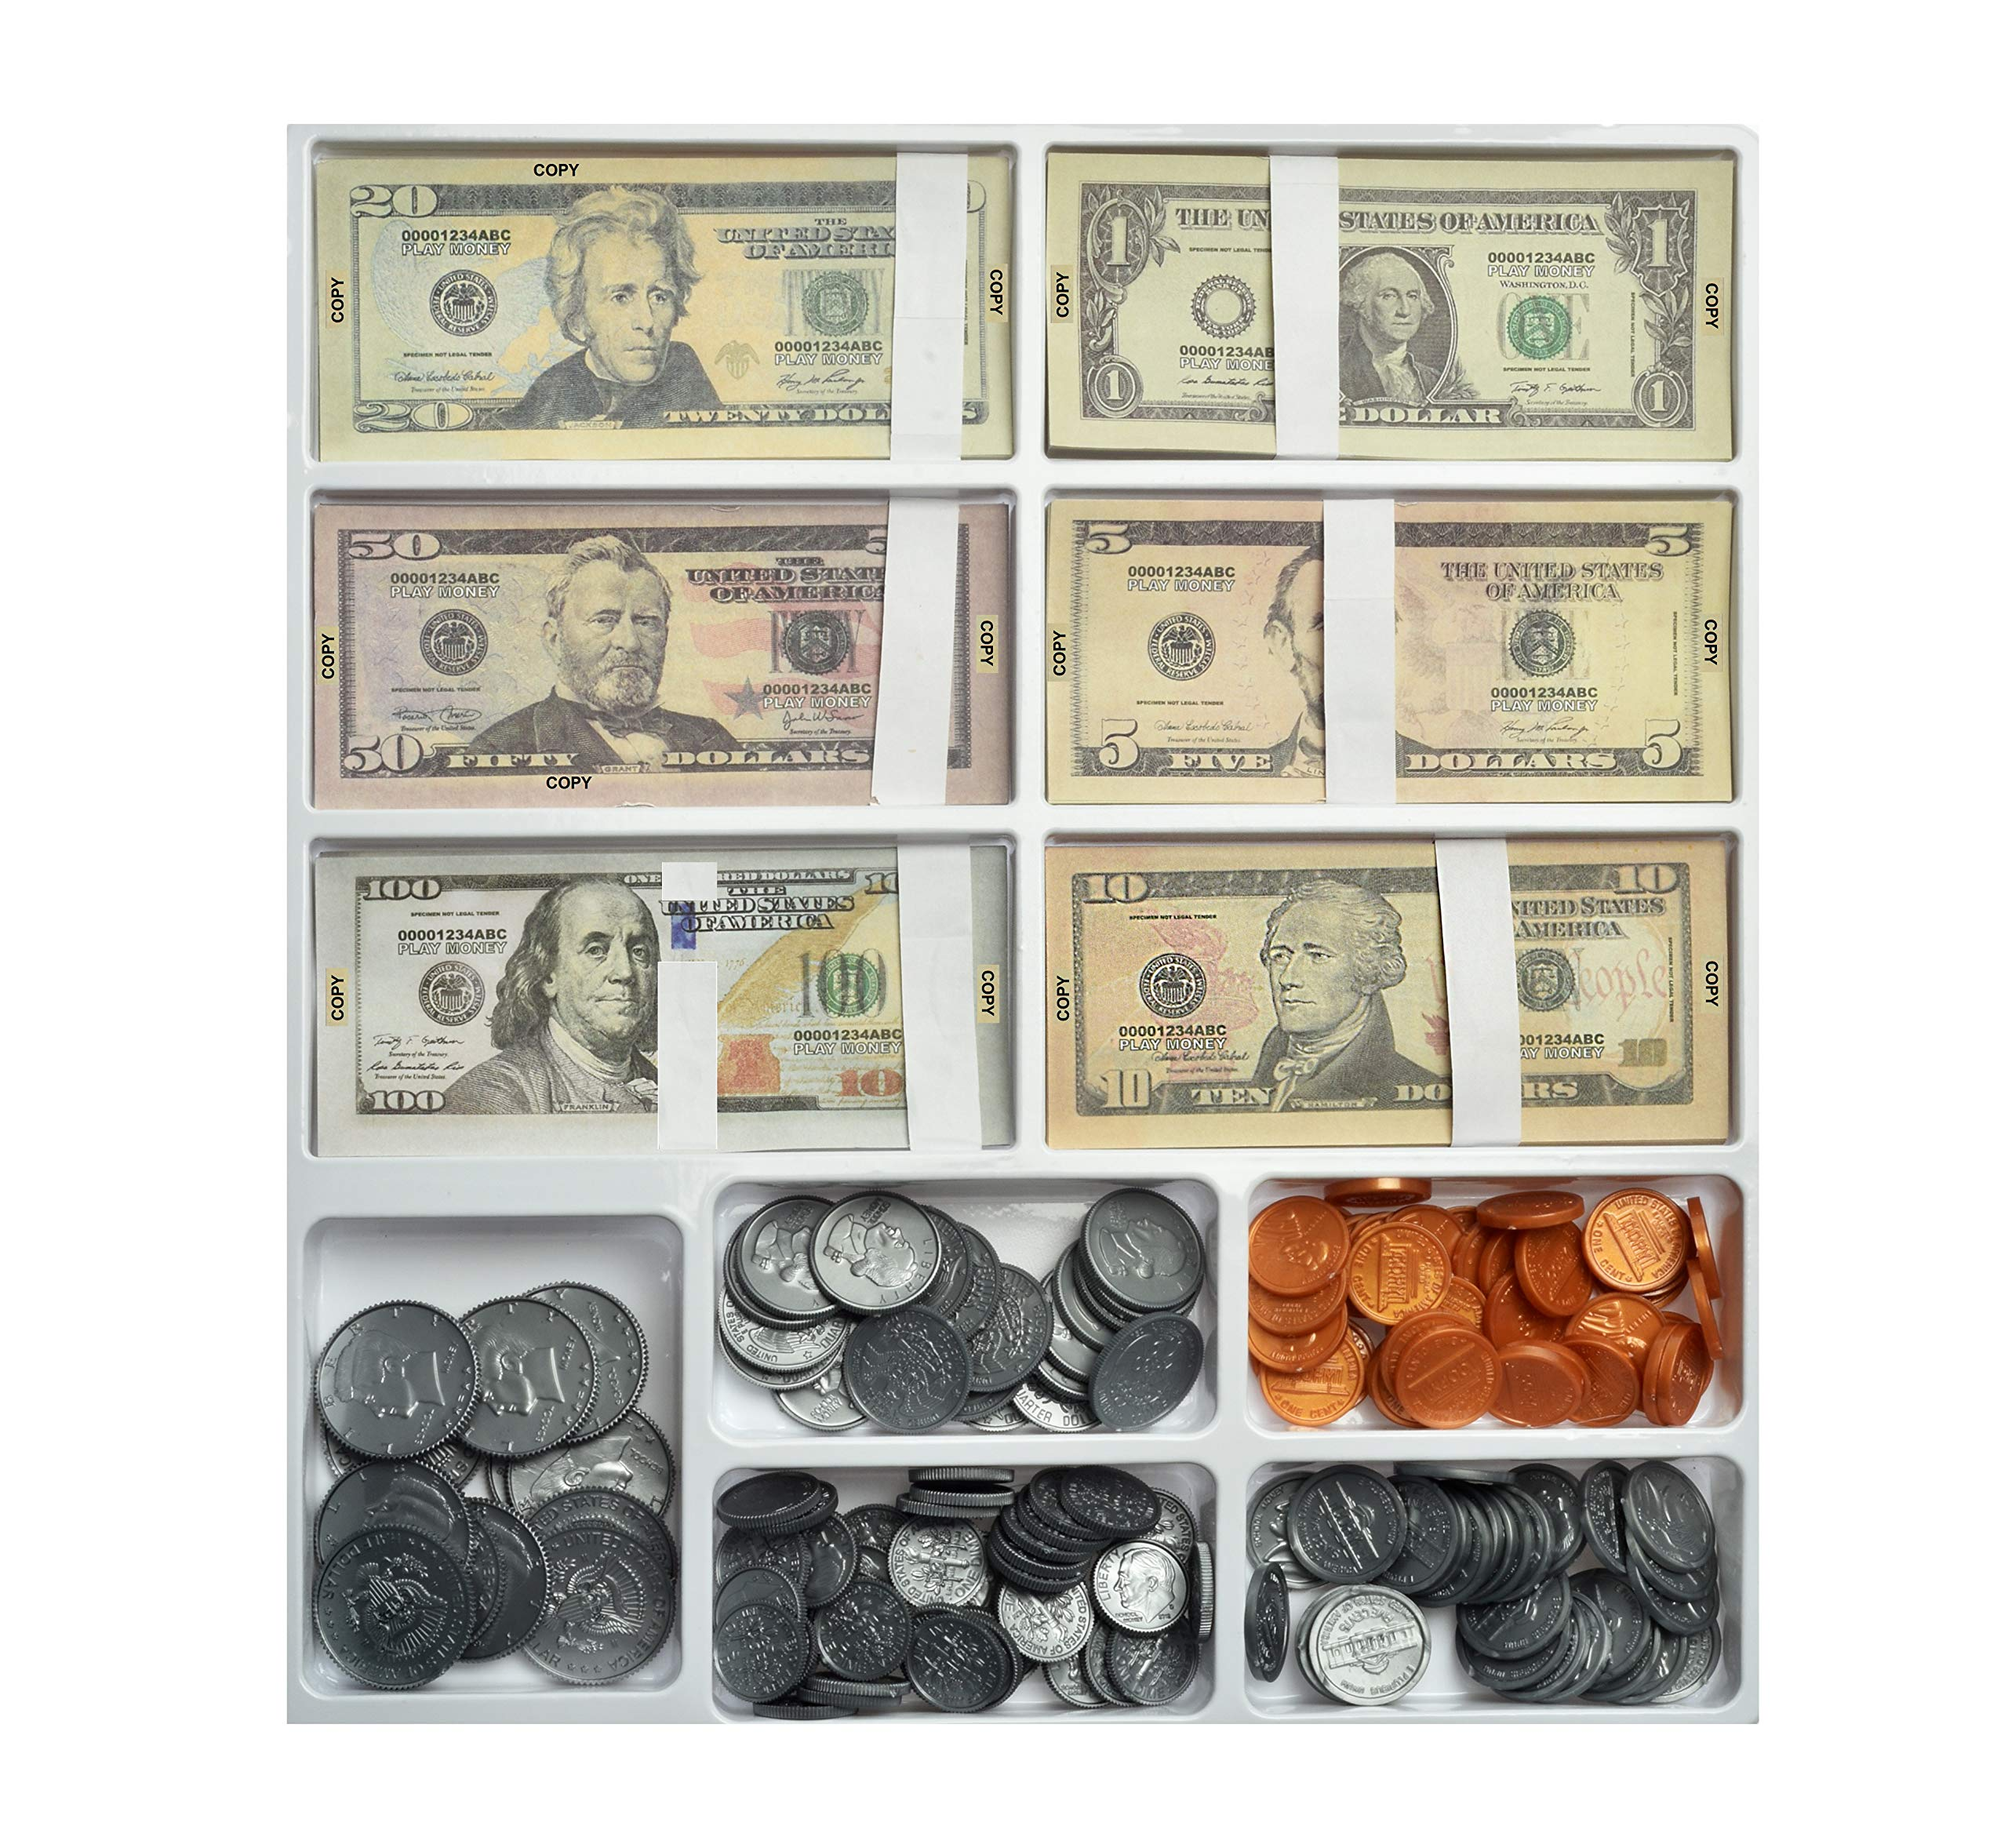 Teacher's Choice Pretend Play Money Set for Kids - 150 School Money Bills and 140 Plastic U.S. School Money Coins in Large Tray with Clear Cover by Teacher's Choice